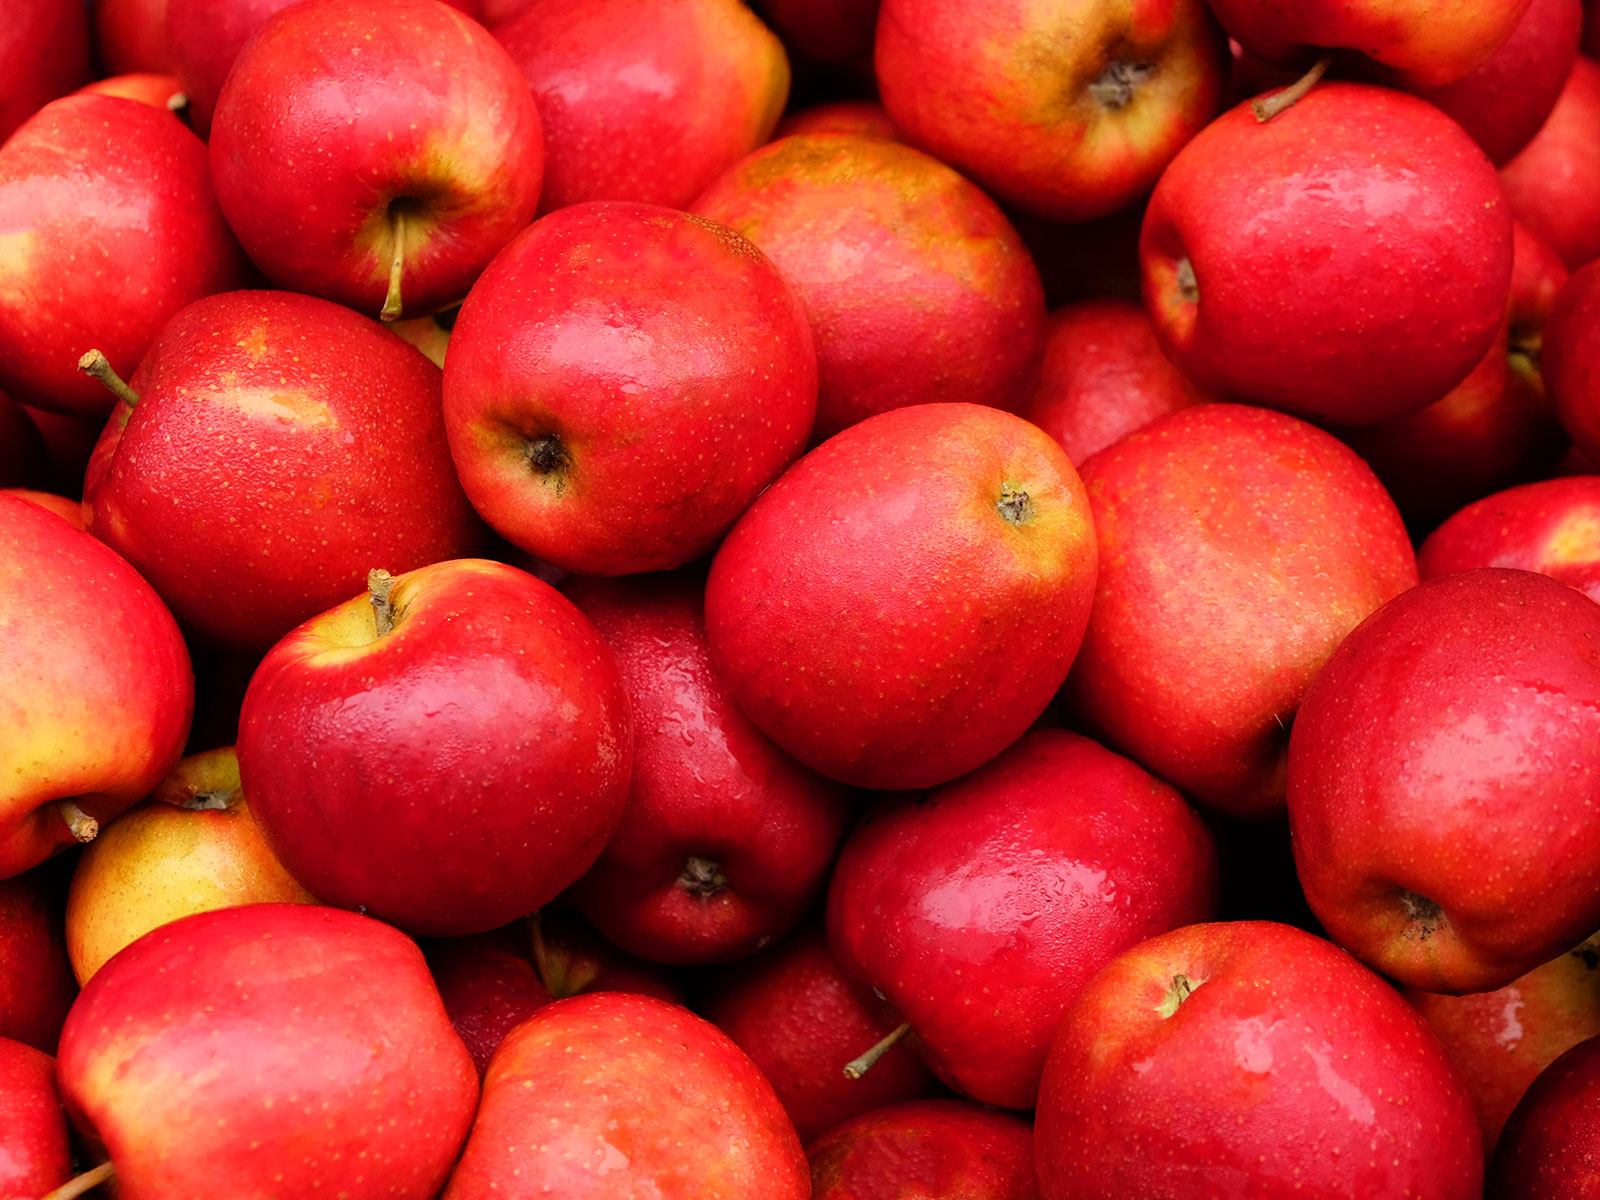 Here's the Best Way to Wash Apples, According to Science